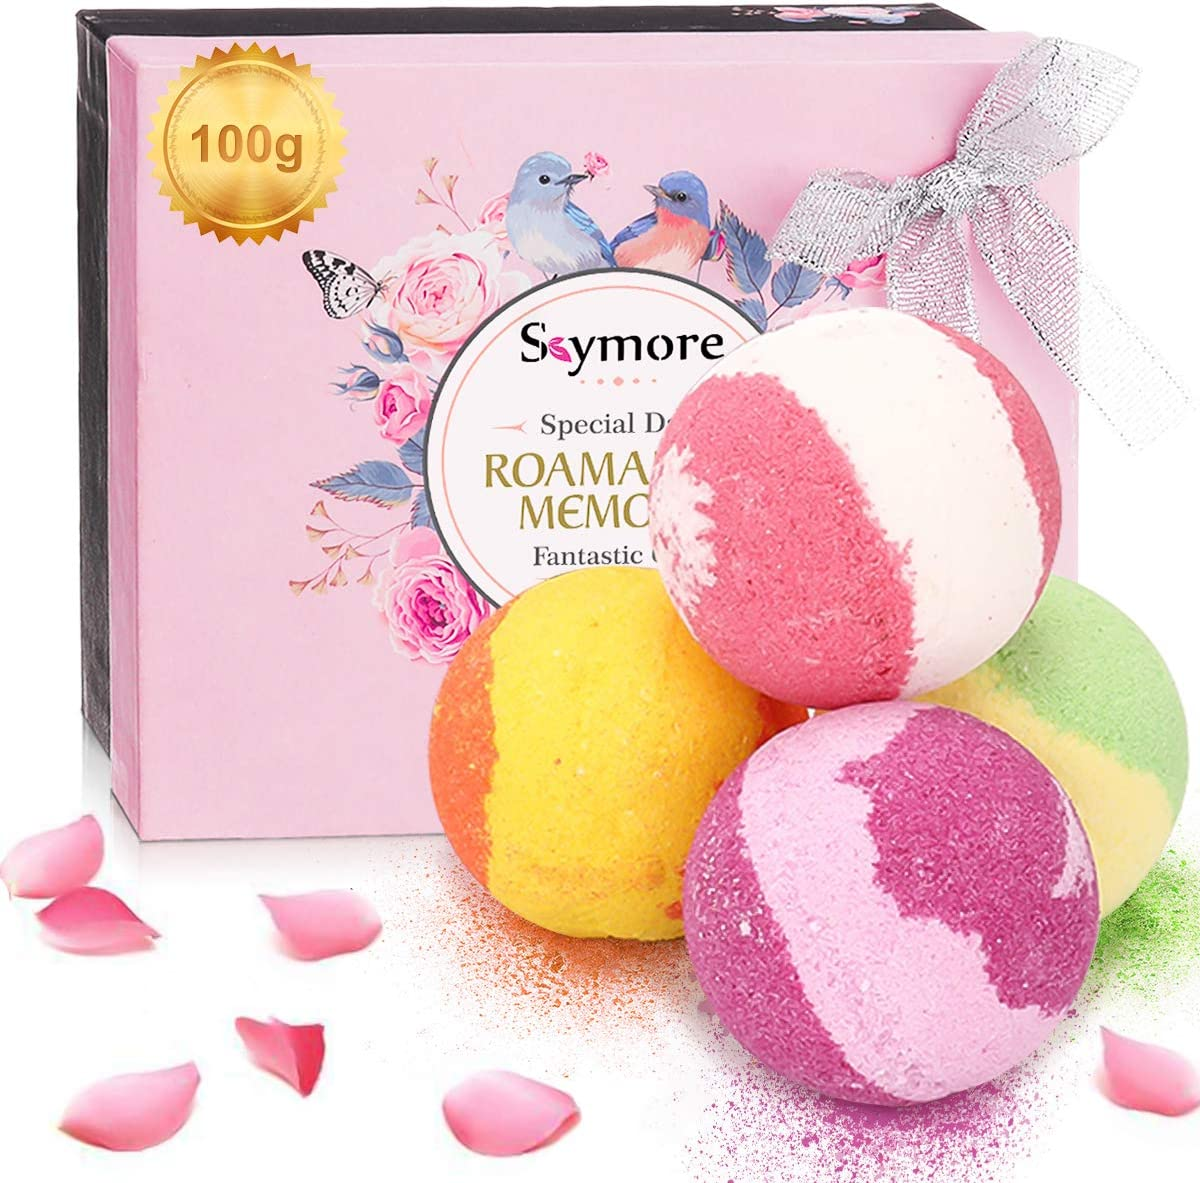 Essential Oils Kit, 4x10ML Pure Essential Oil and 4 Bath Balls Gift Set WAS £15.99 NOW £7.99 w/code Skymore923W @ Amazon